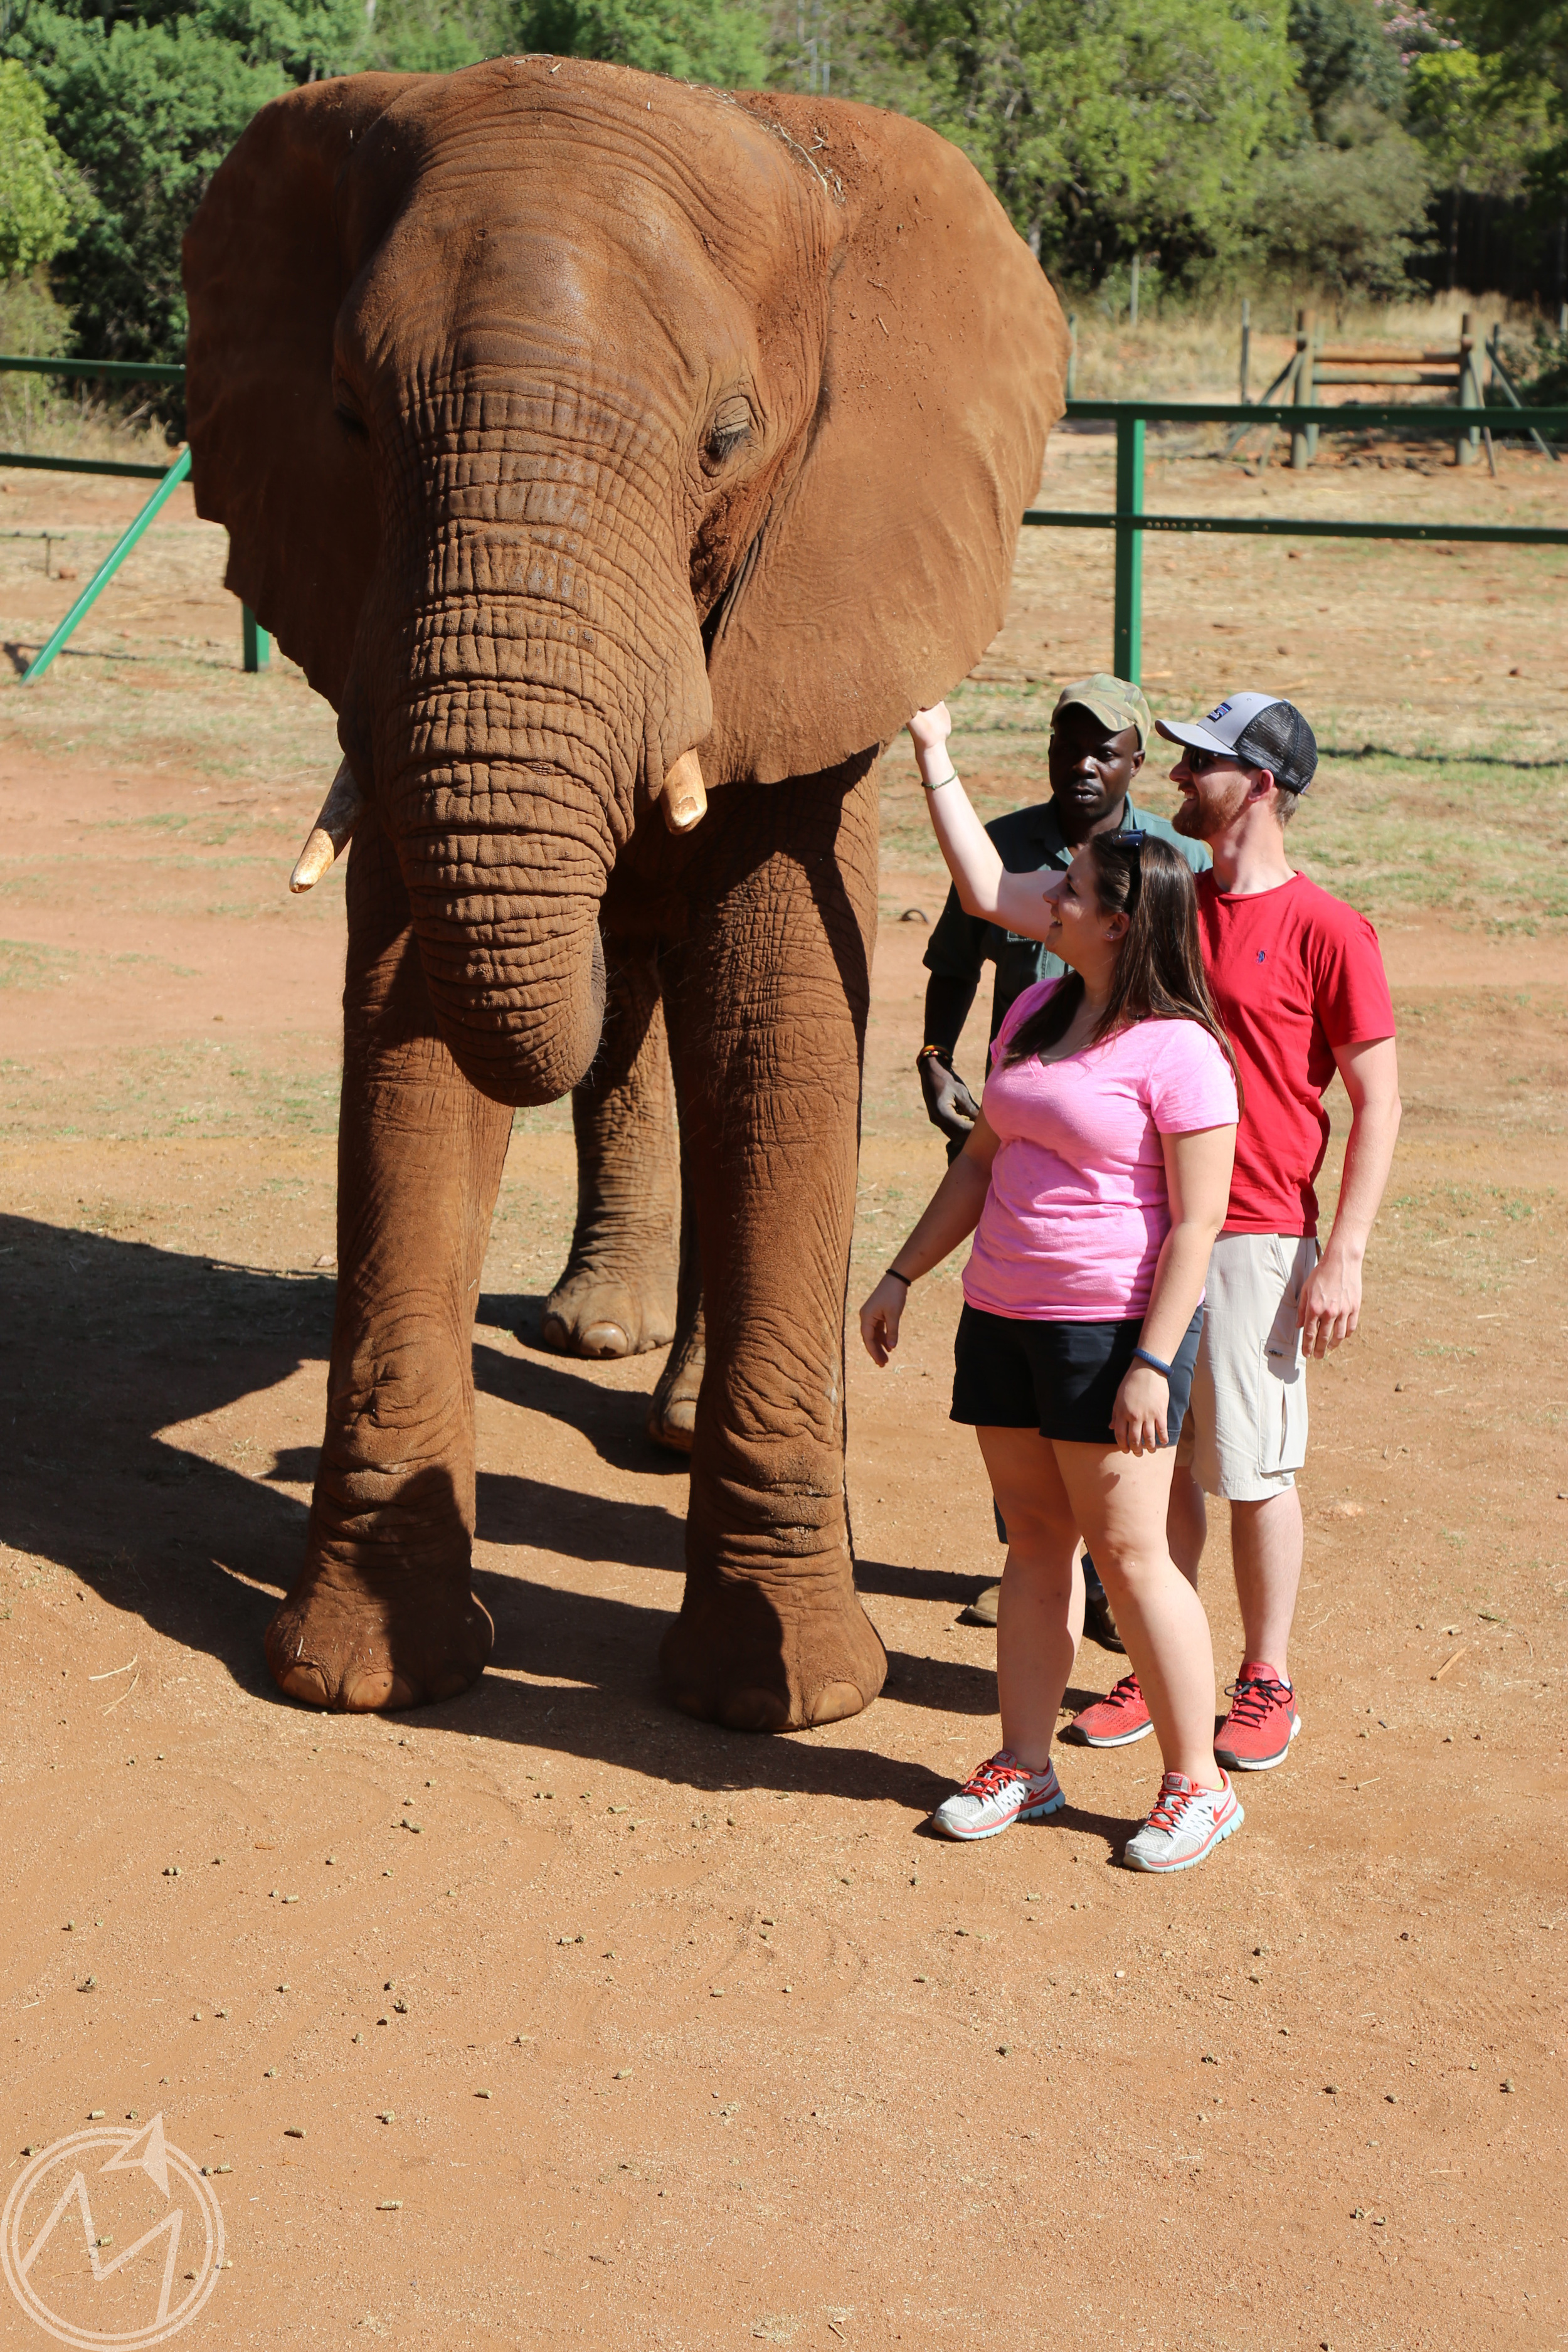 mark and leah getting acquainted with a new friend.